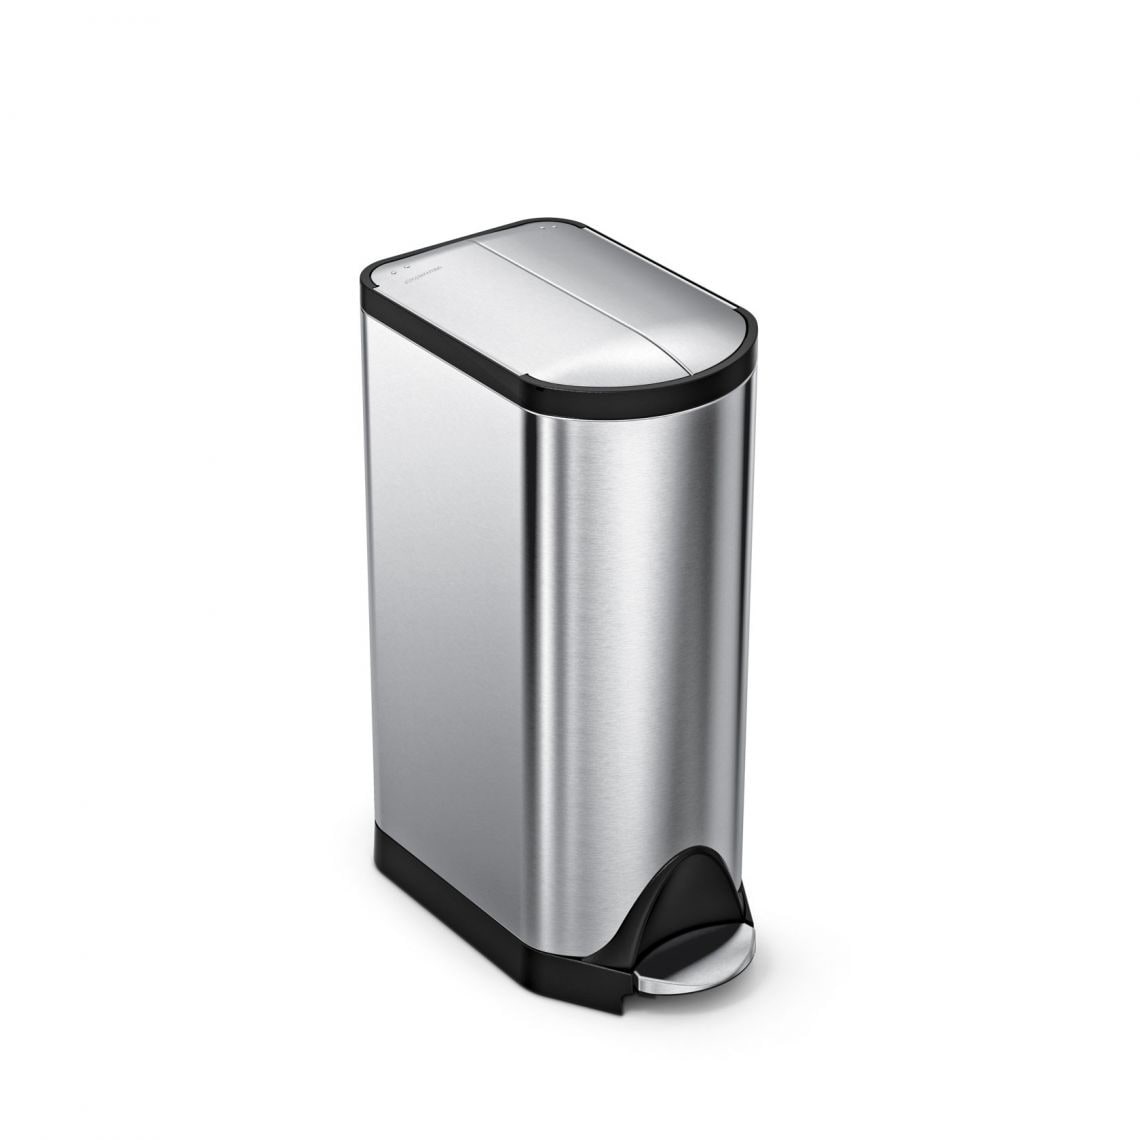 Simplehuman Butterfly Step Trash Can Fingerprint Proof Brushed Stainless Steel 30 Liters 8 Gallons